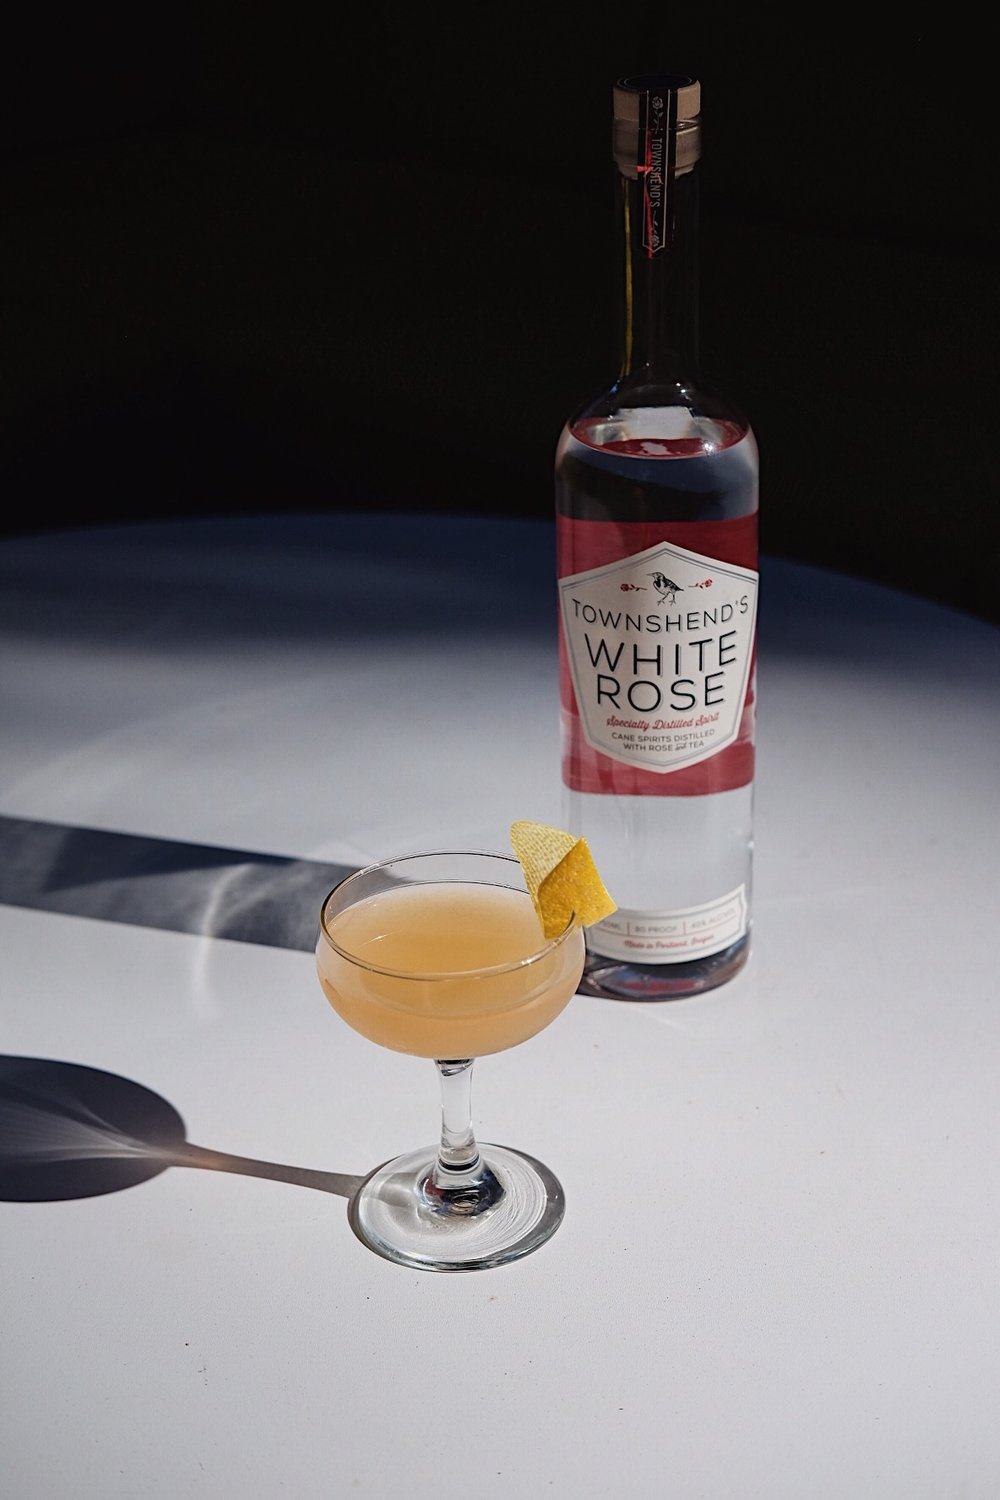 ingredients: - 1 1/2 oz White Rose Spirit1/2 oz Cascadia Bitter Liqueur3/4 oz pink grapefruit juice1/4 oz honey syrupGarnish: lemon zest